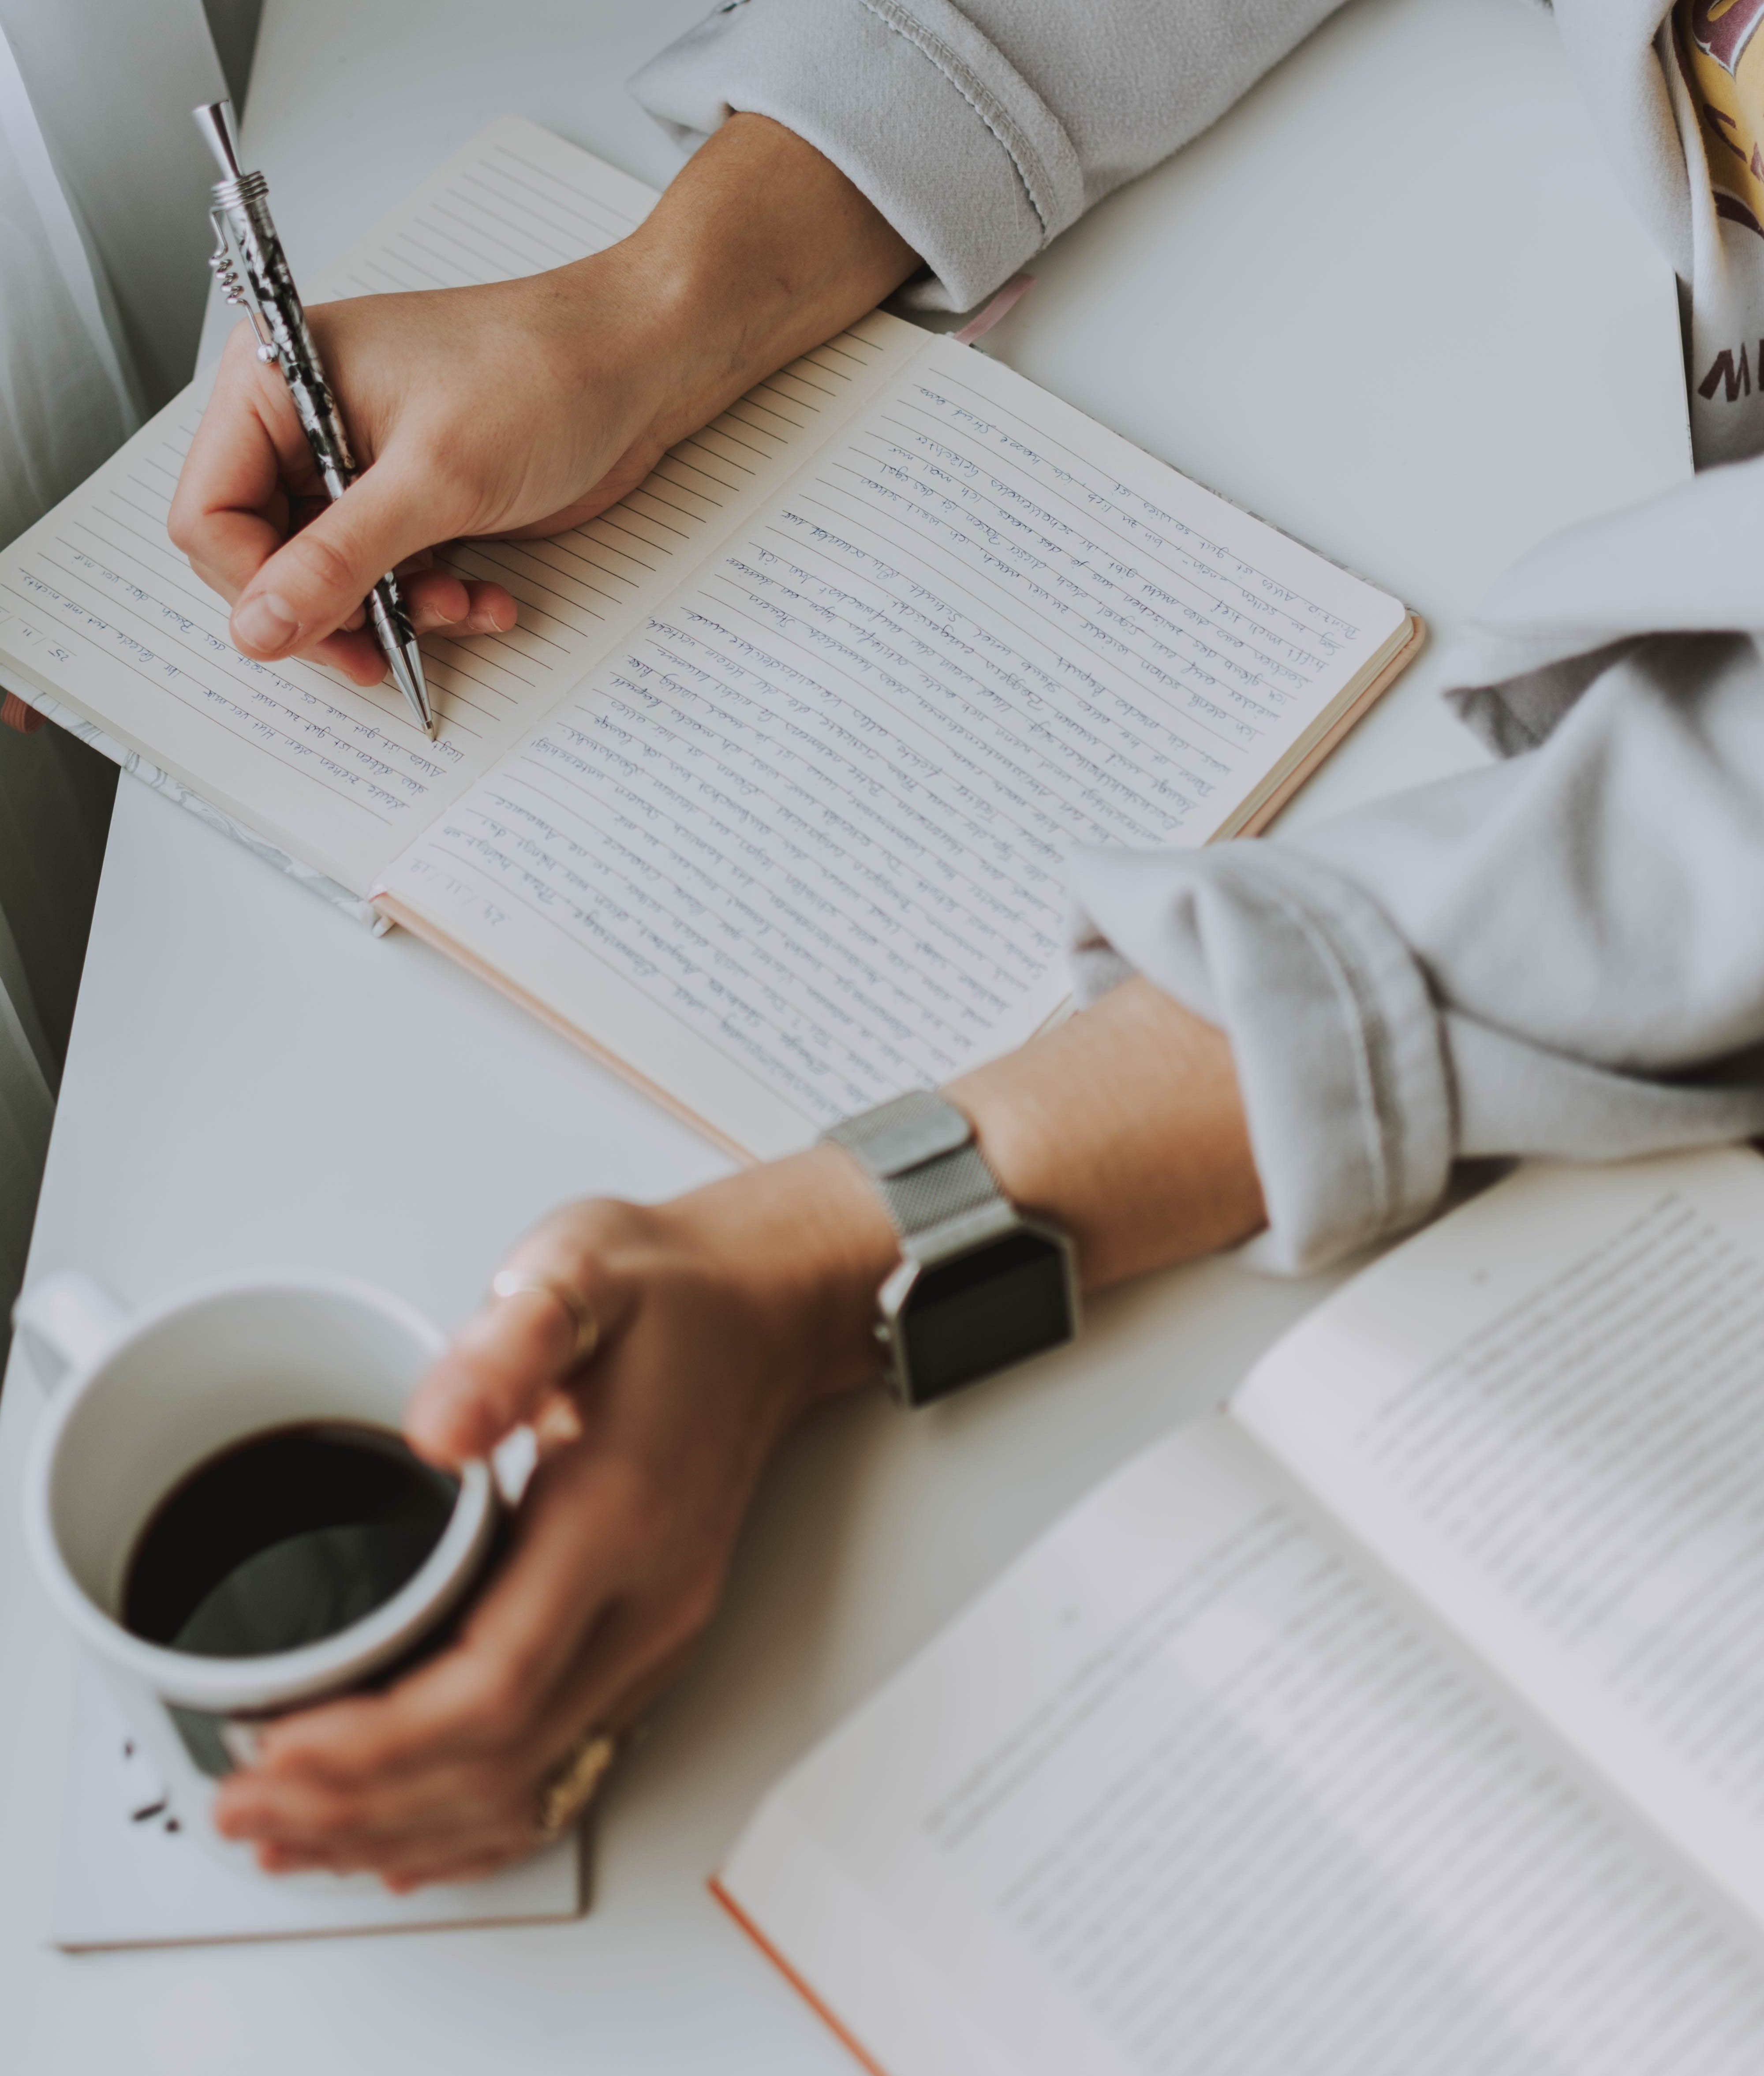 Maybe writing this down will make me feel better | Source: Pexels